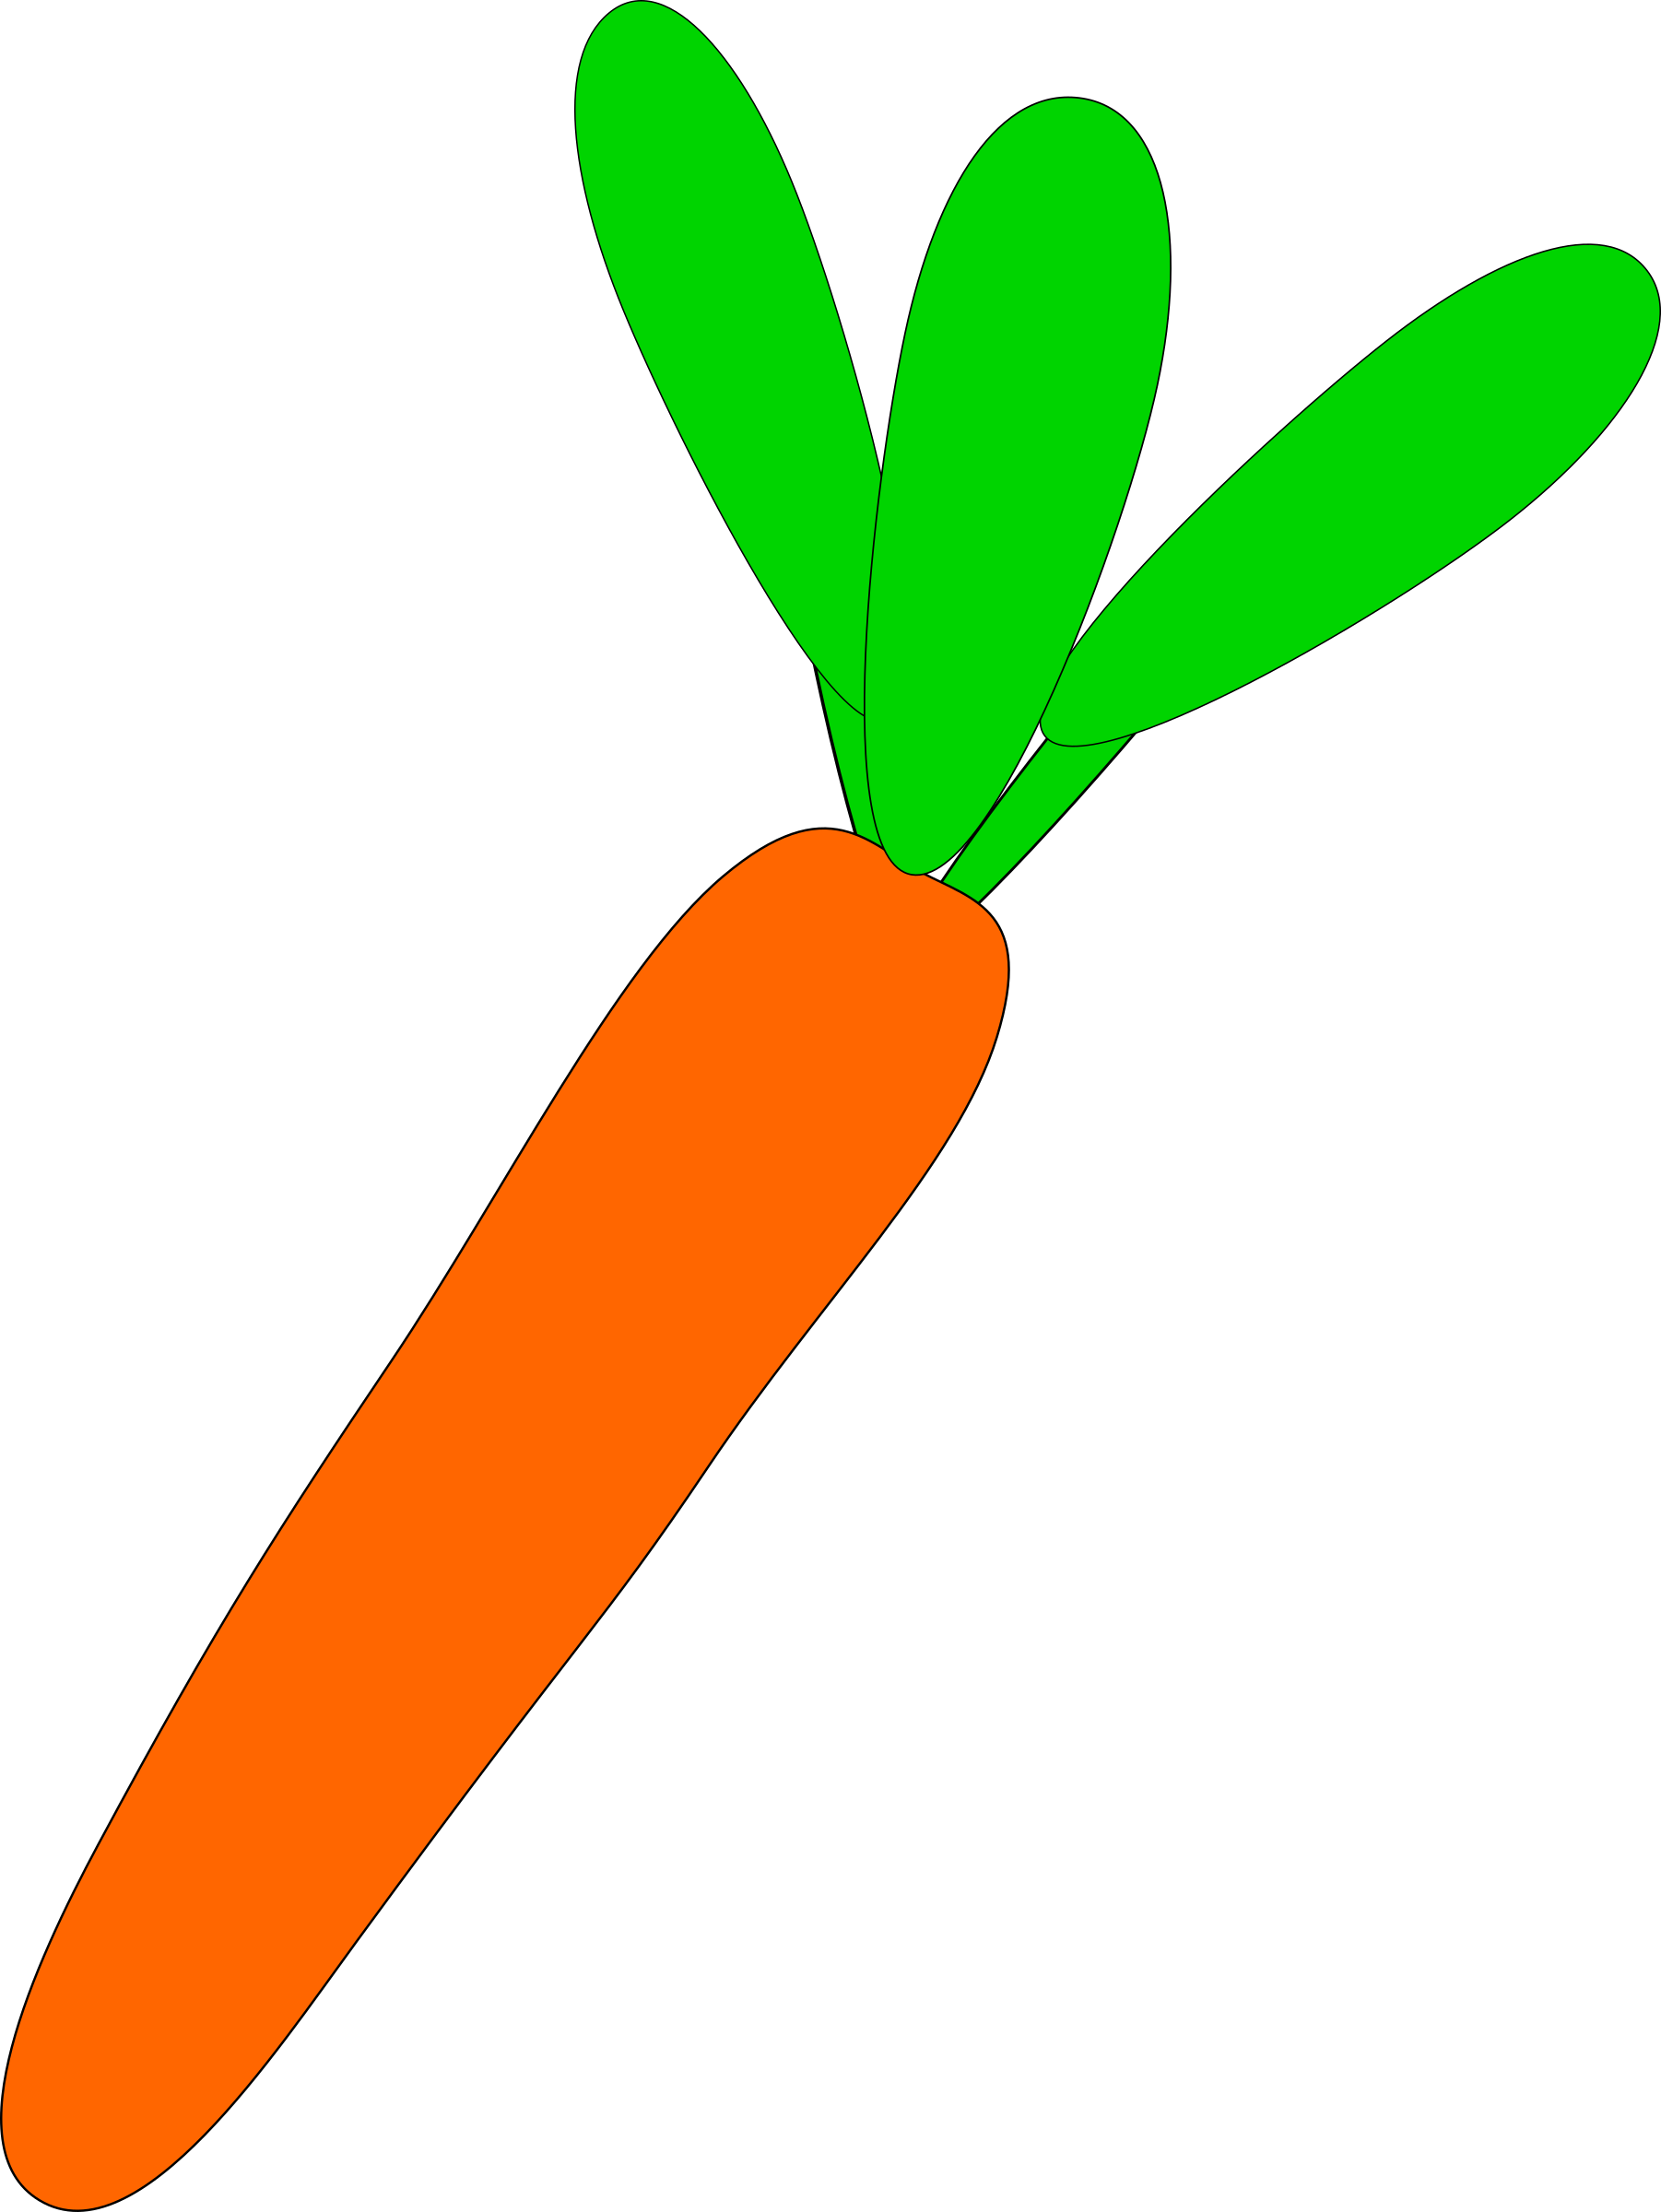 carrot by Machovka